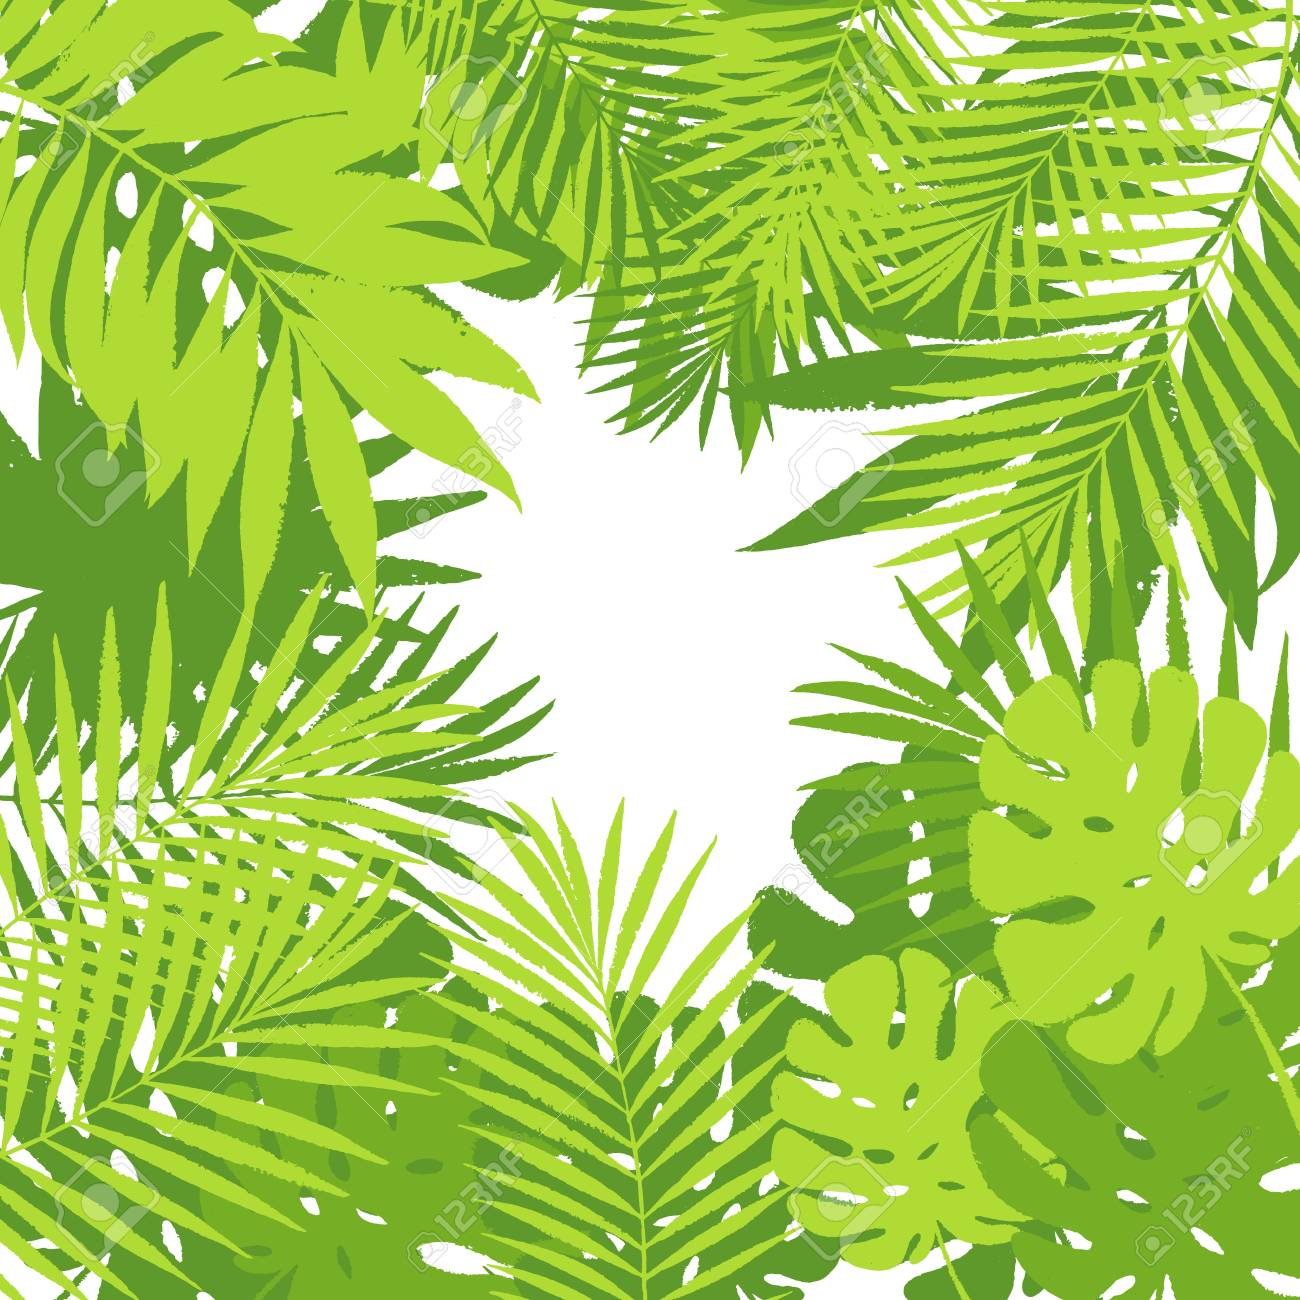 Wandposter Natur Summer Tropical Palm Tree Leaves Background Vector Grunge Design